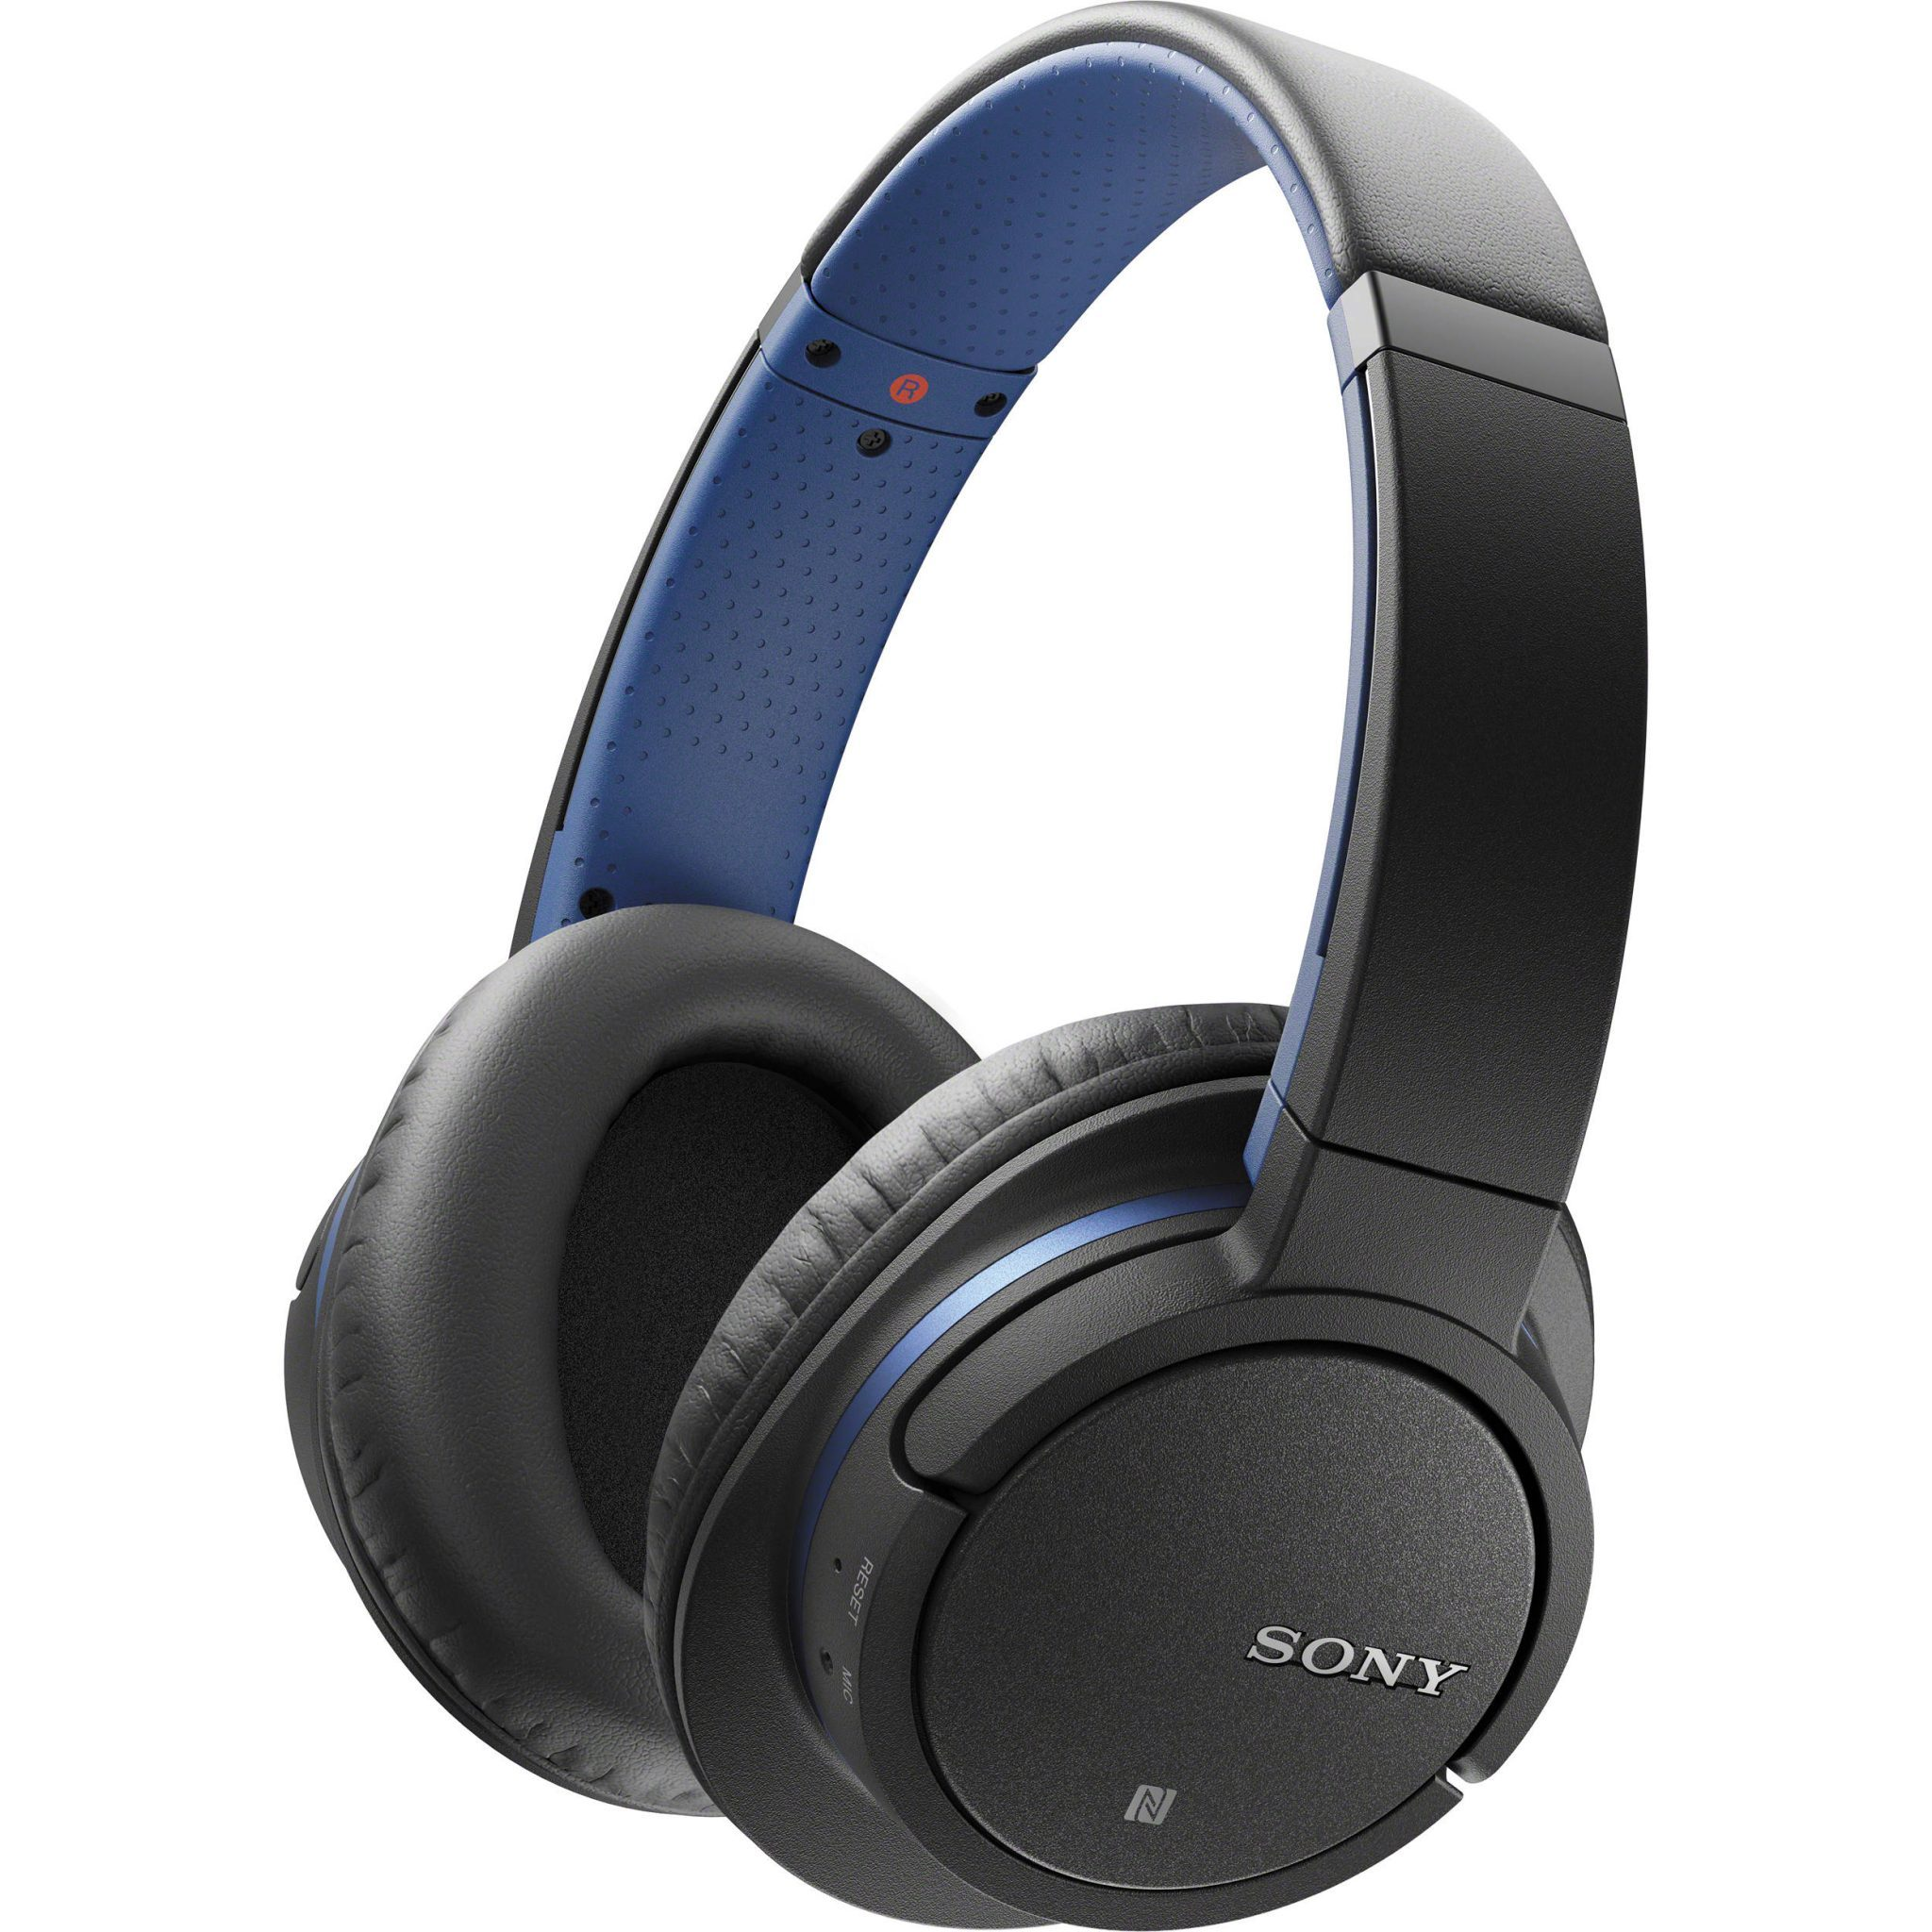 Sony MDR-ZX770BT Wireless Headphone Review